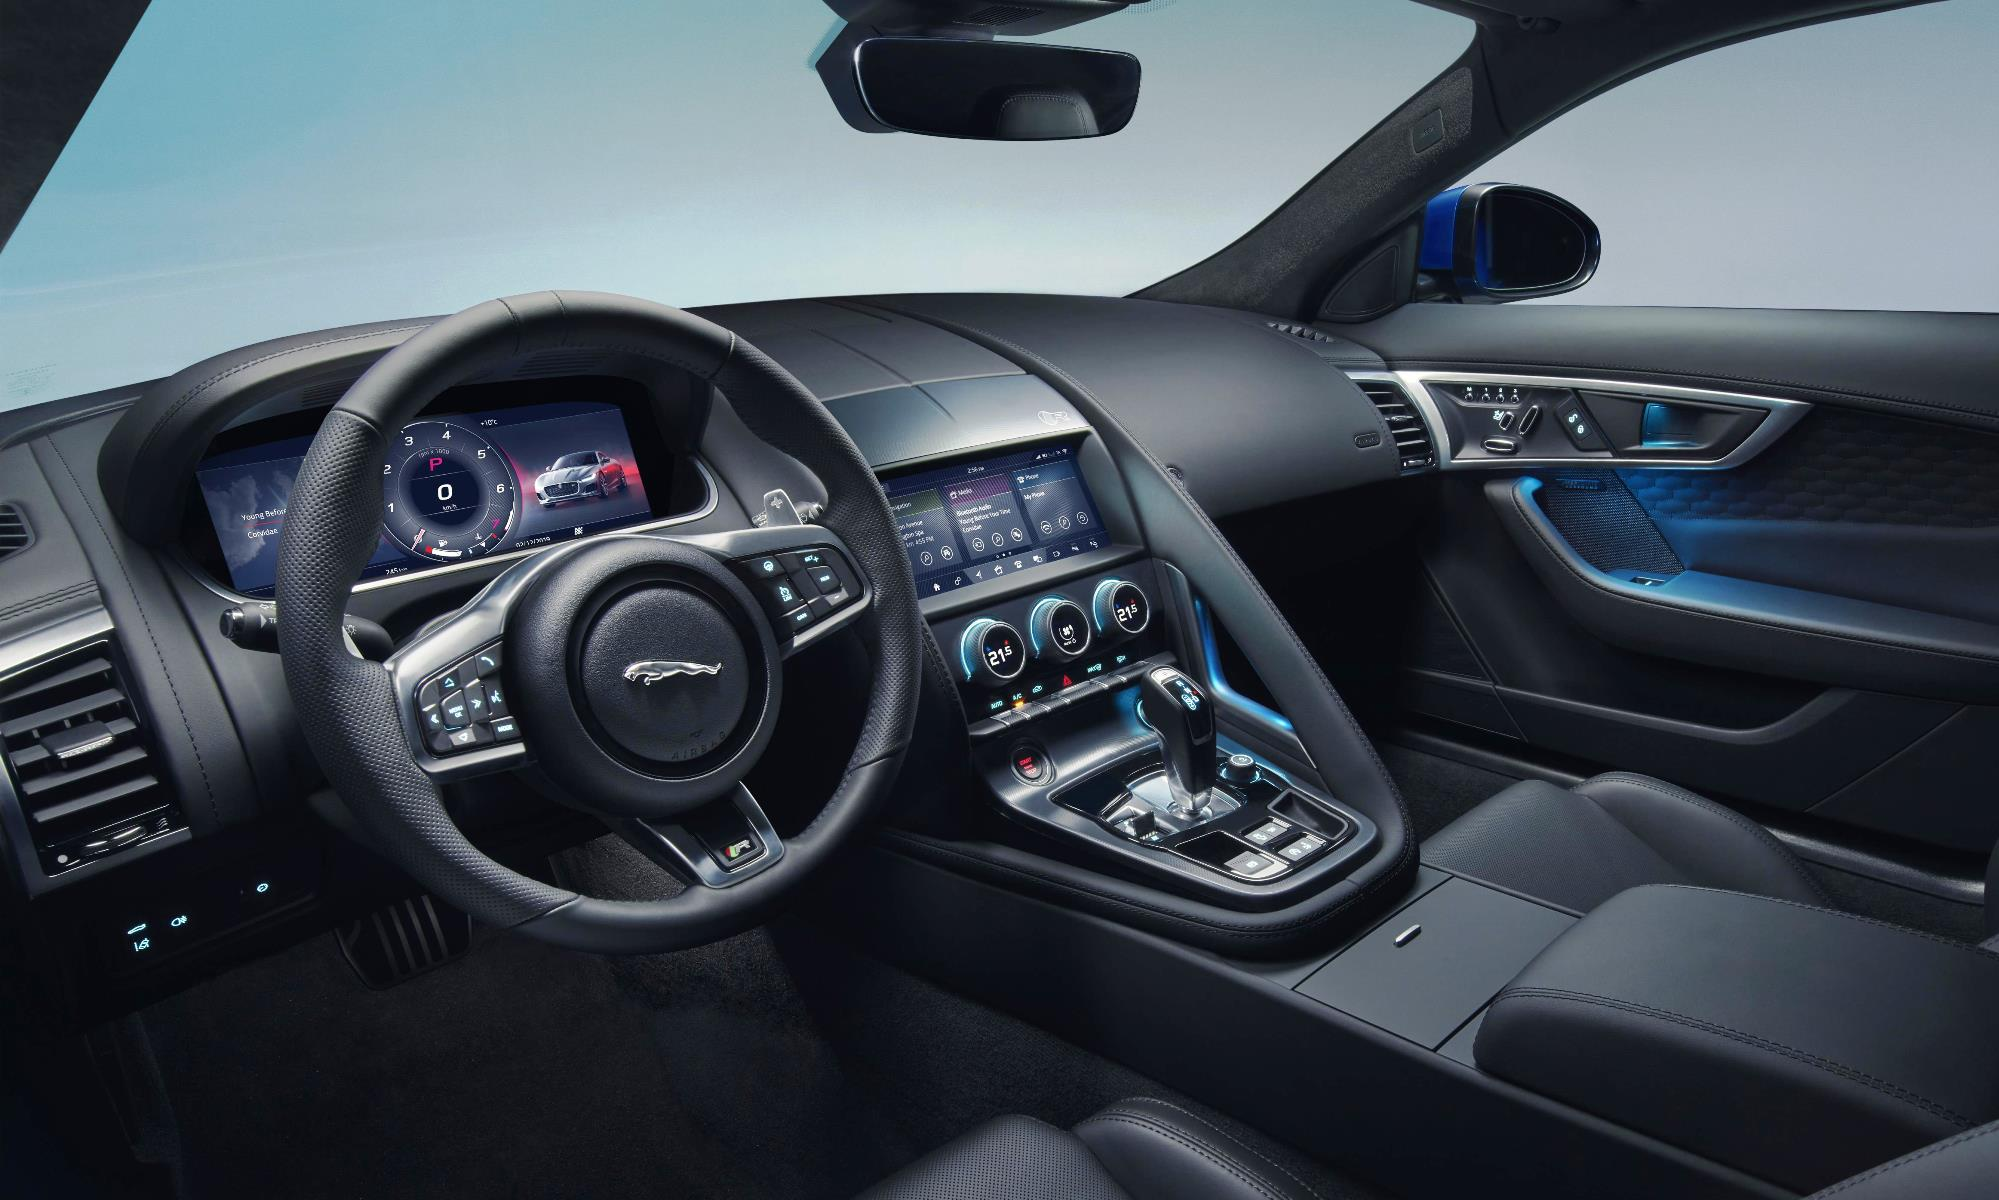 New Jaguar F-Type interior